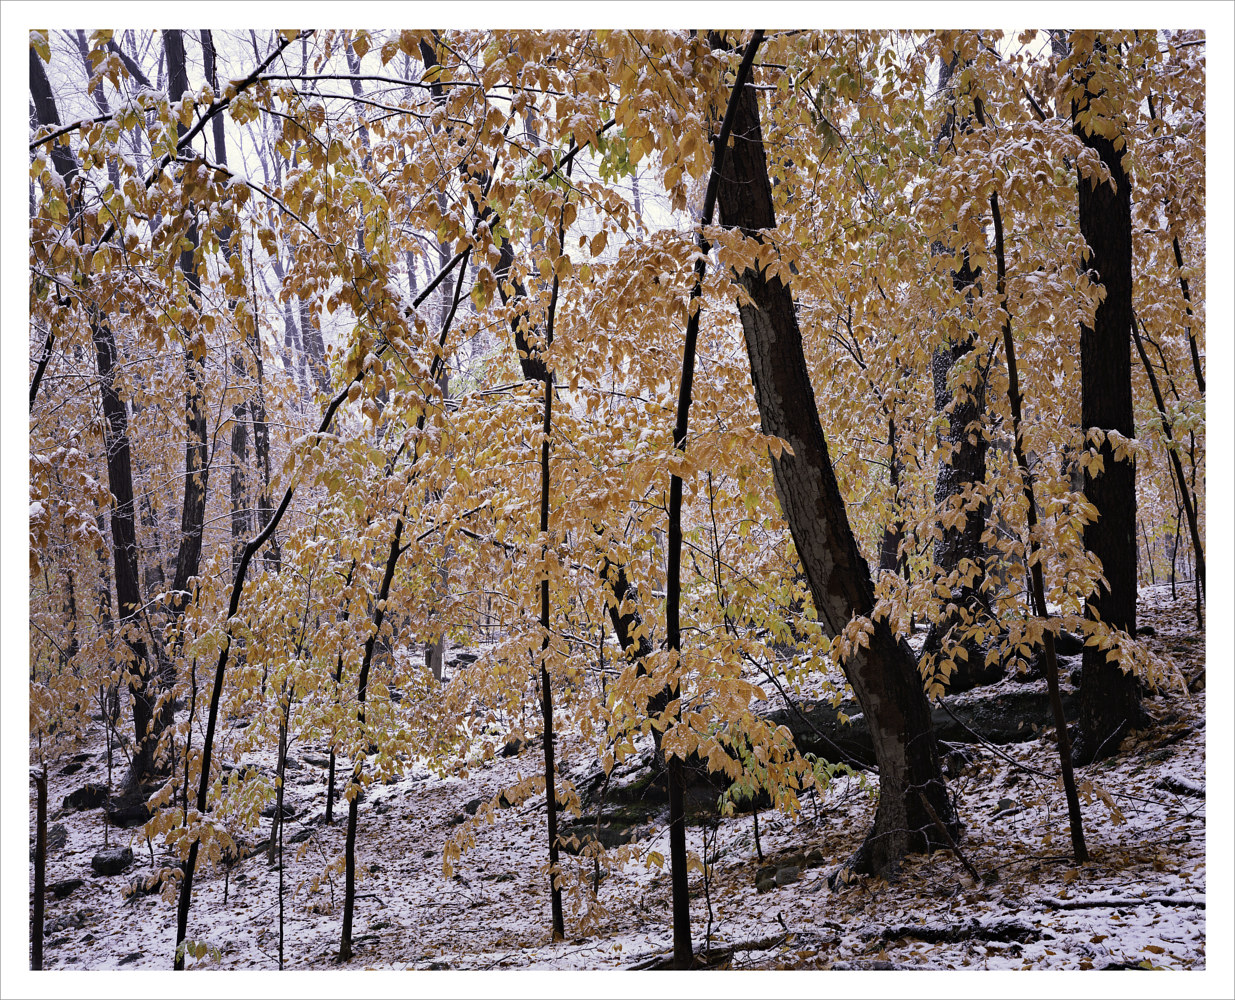 Beech Foliage, Early Snow by Wayne Mazorow